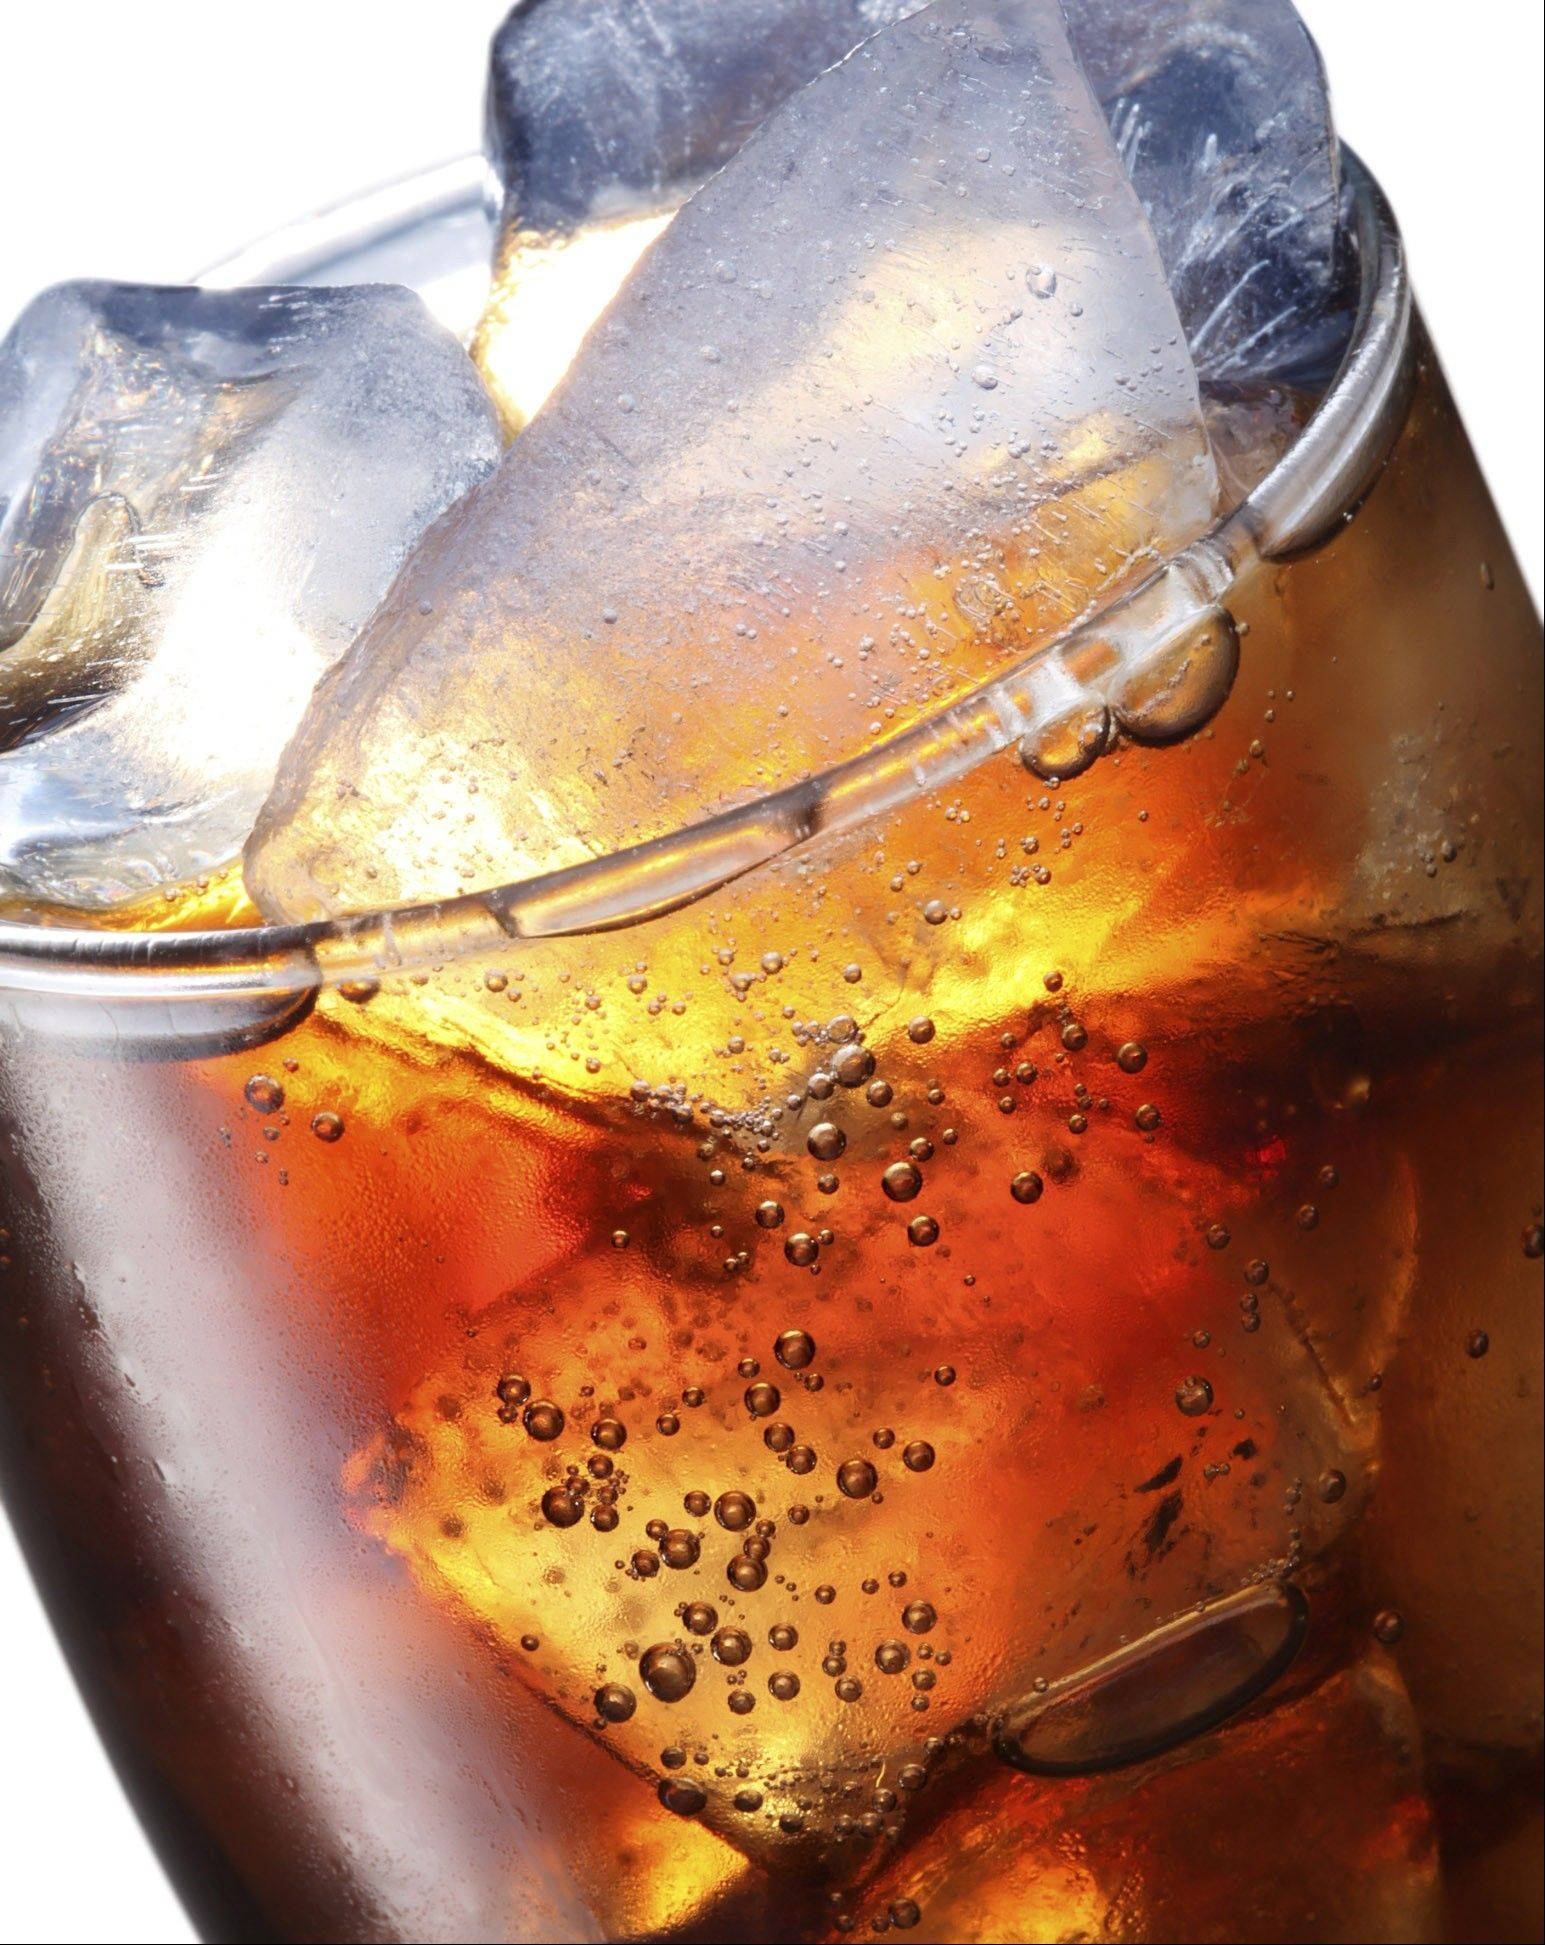 There are still some nagging questions about drinking diet soda and its artificial sweeteners.